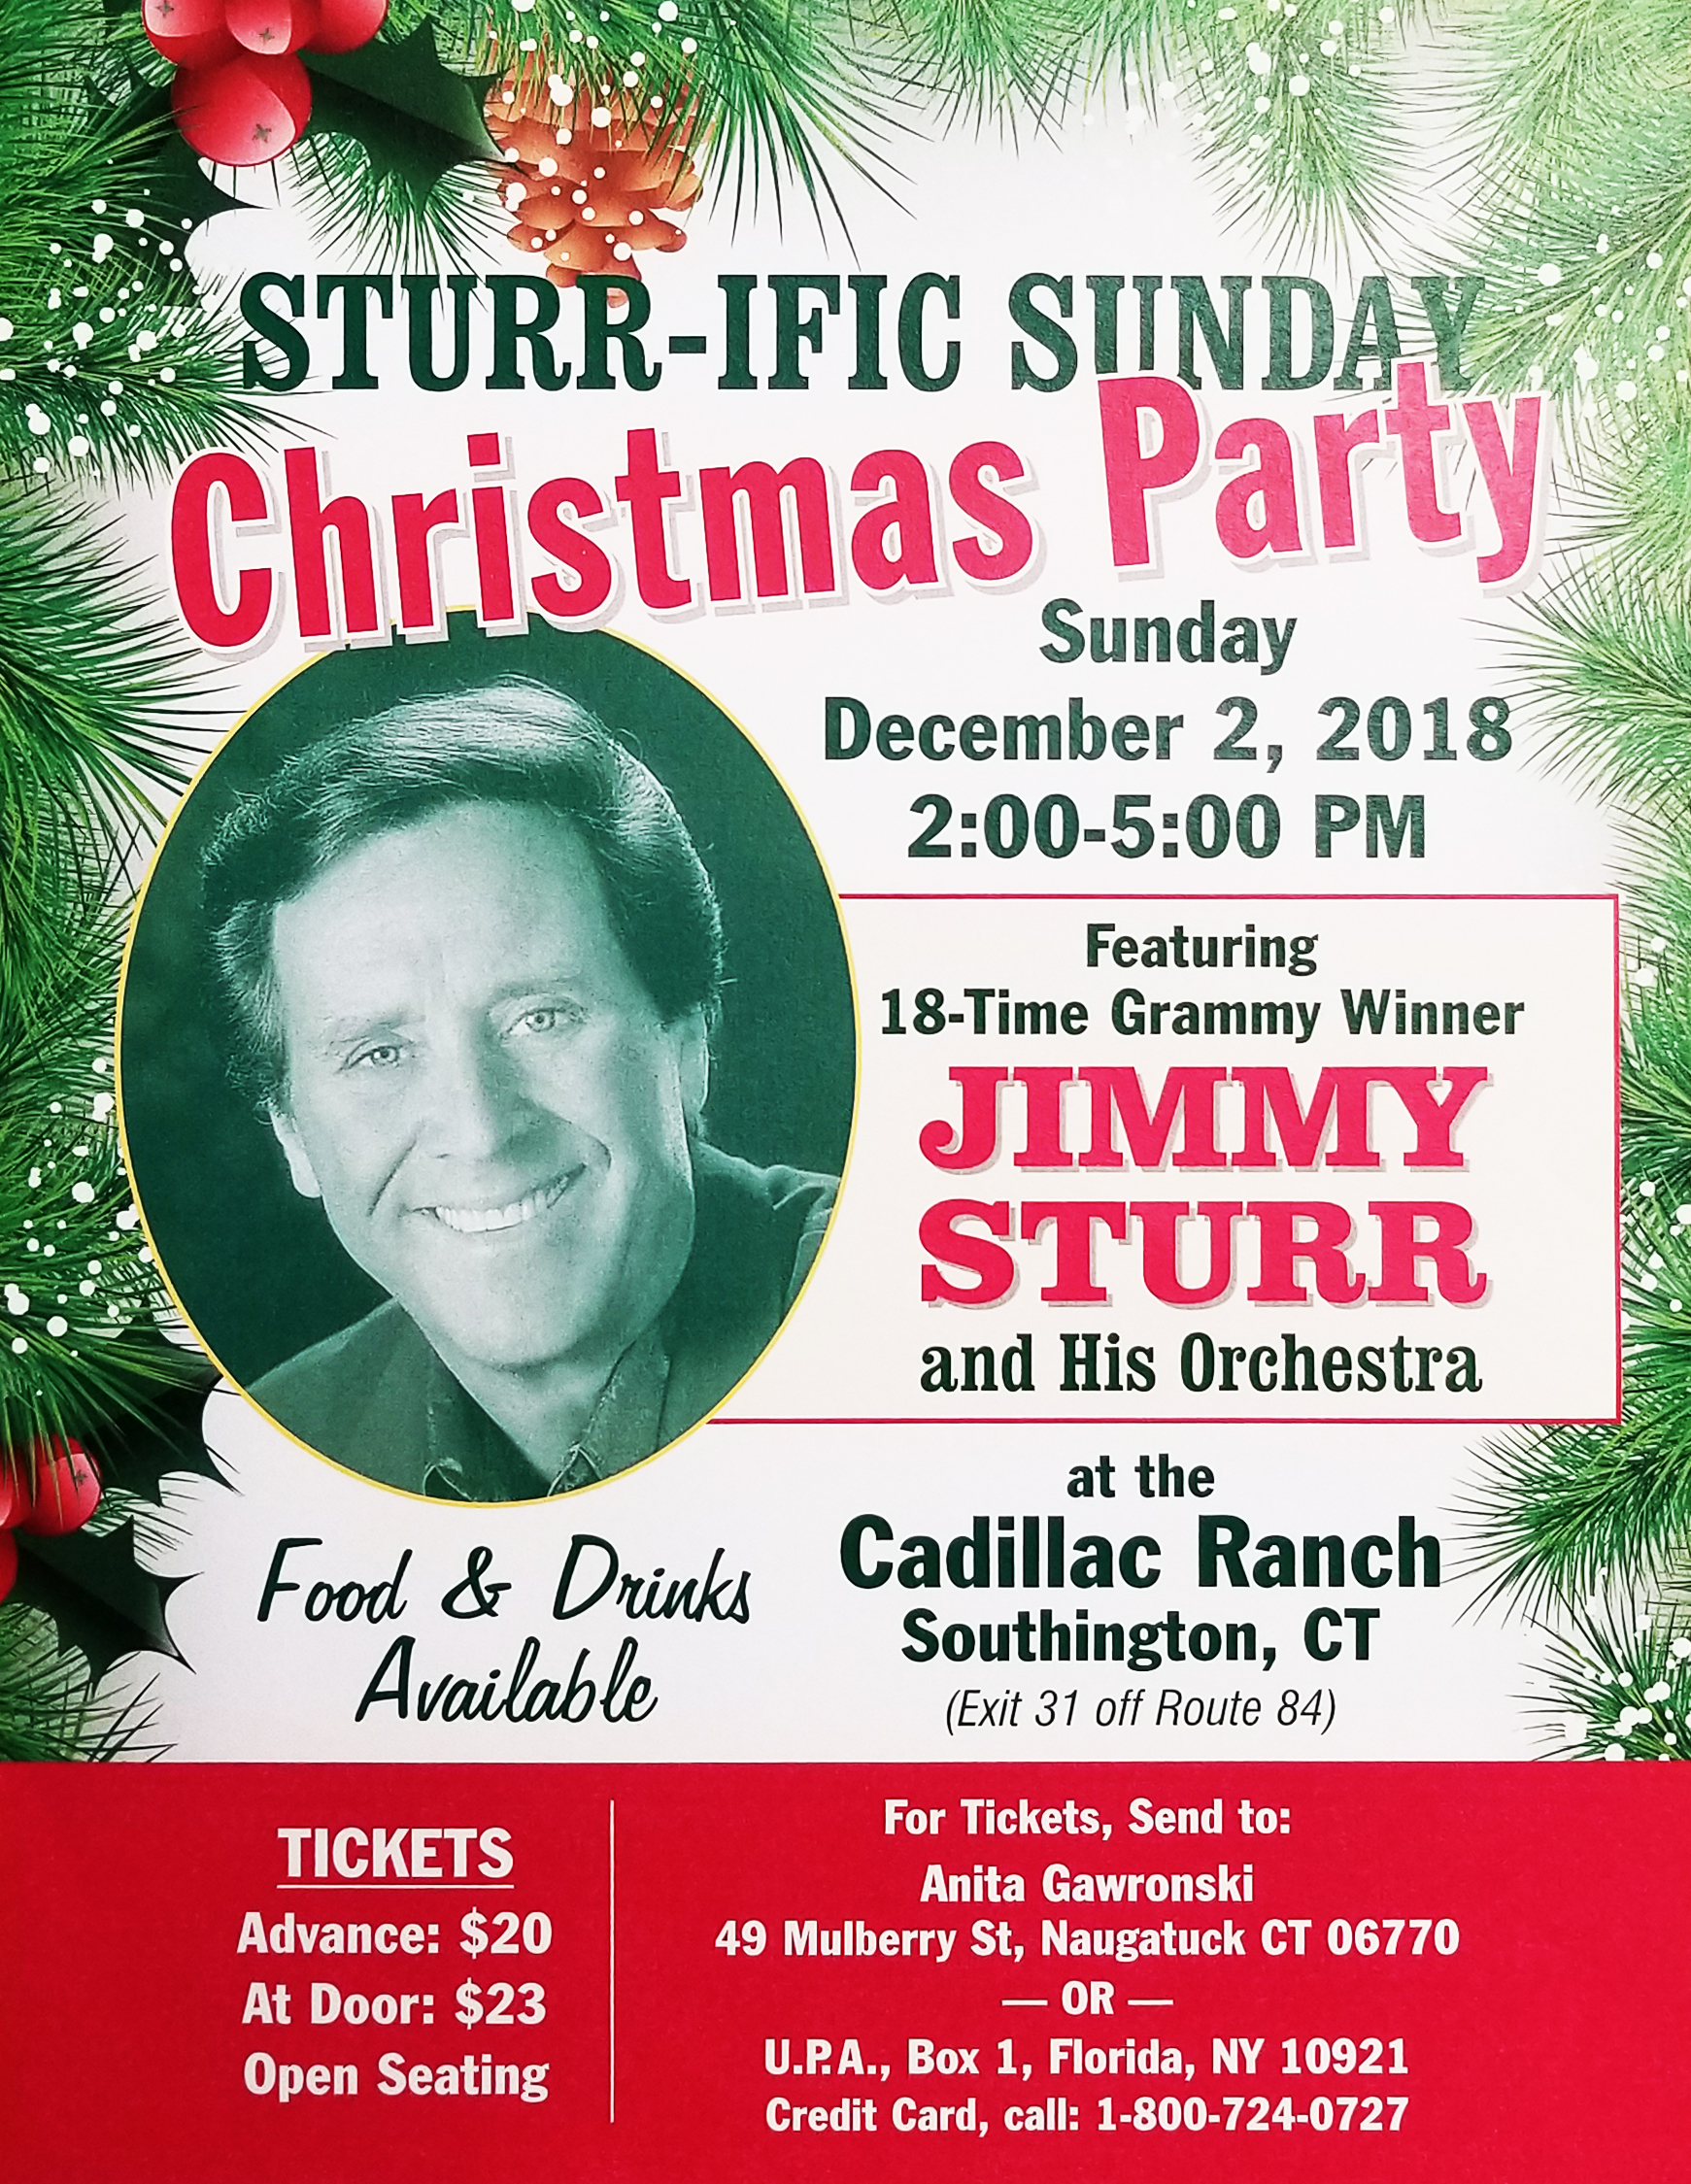 Sturr-Ific Sunday Christmas Party